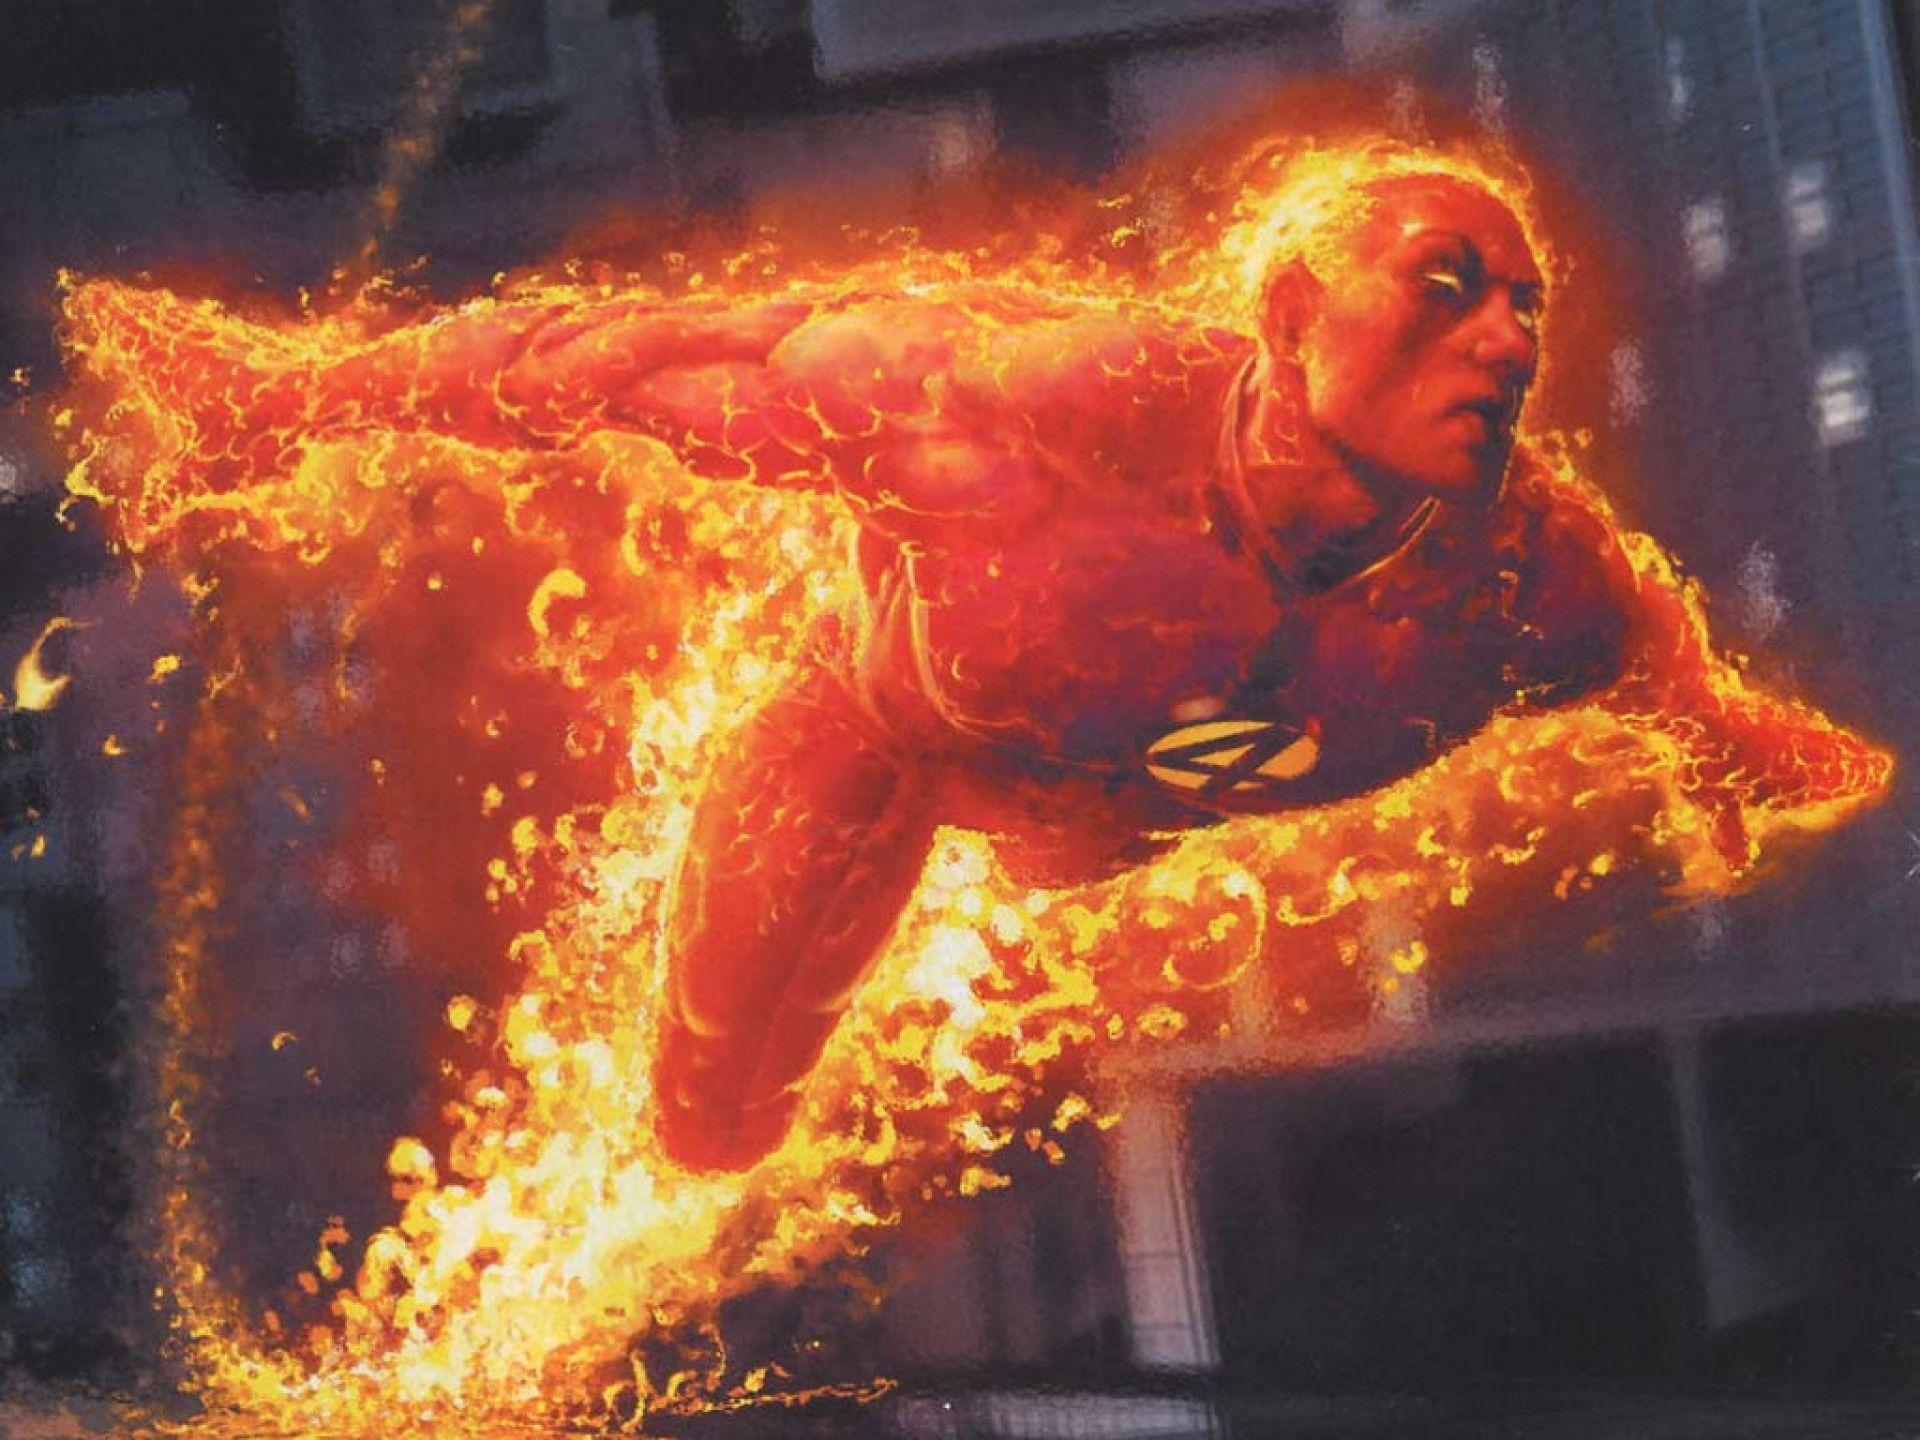 The Human Torch: 20 Things Only Real Marvel Fans Know